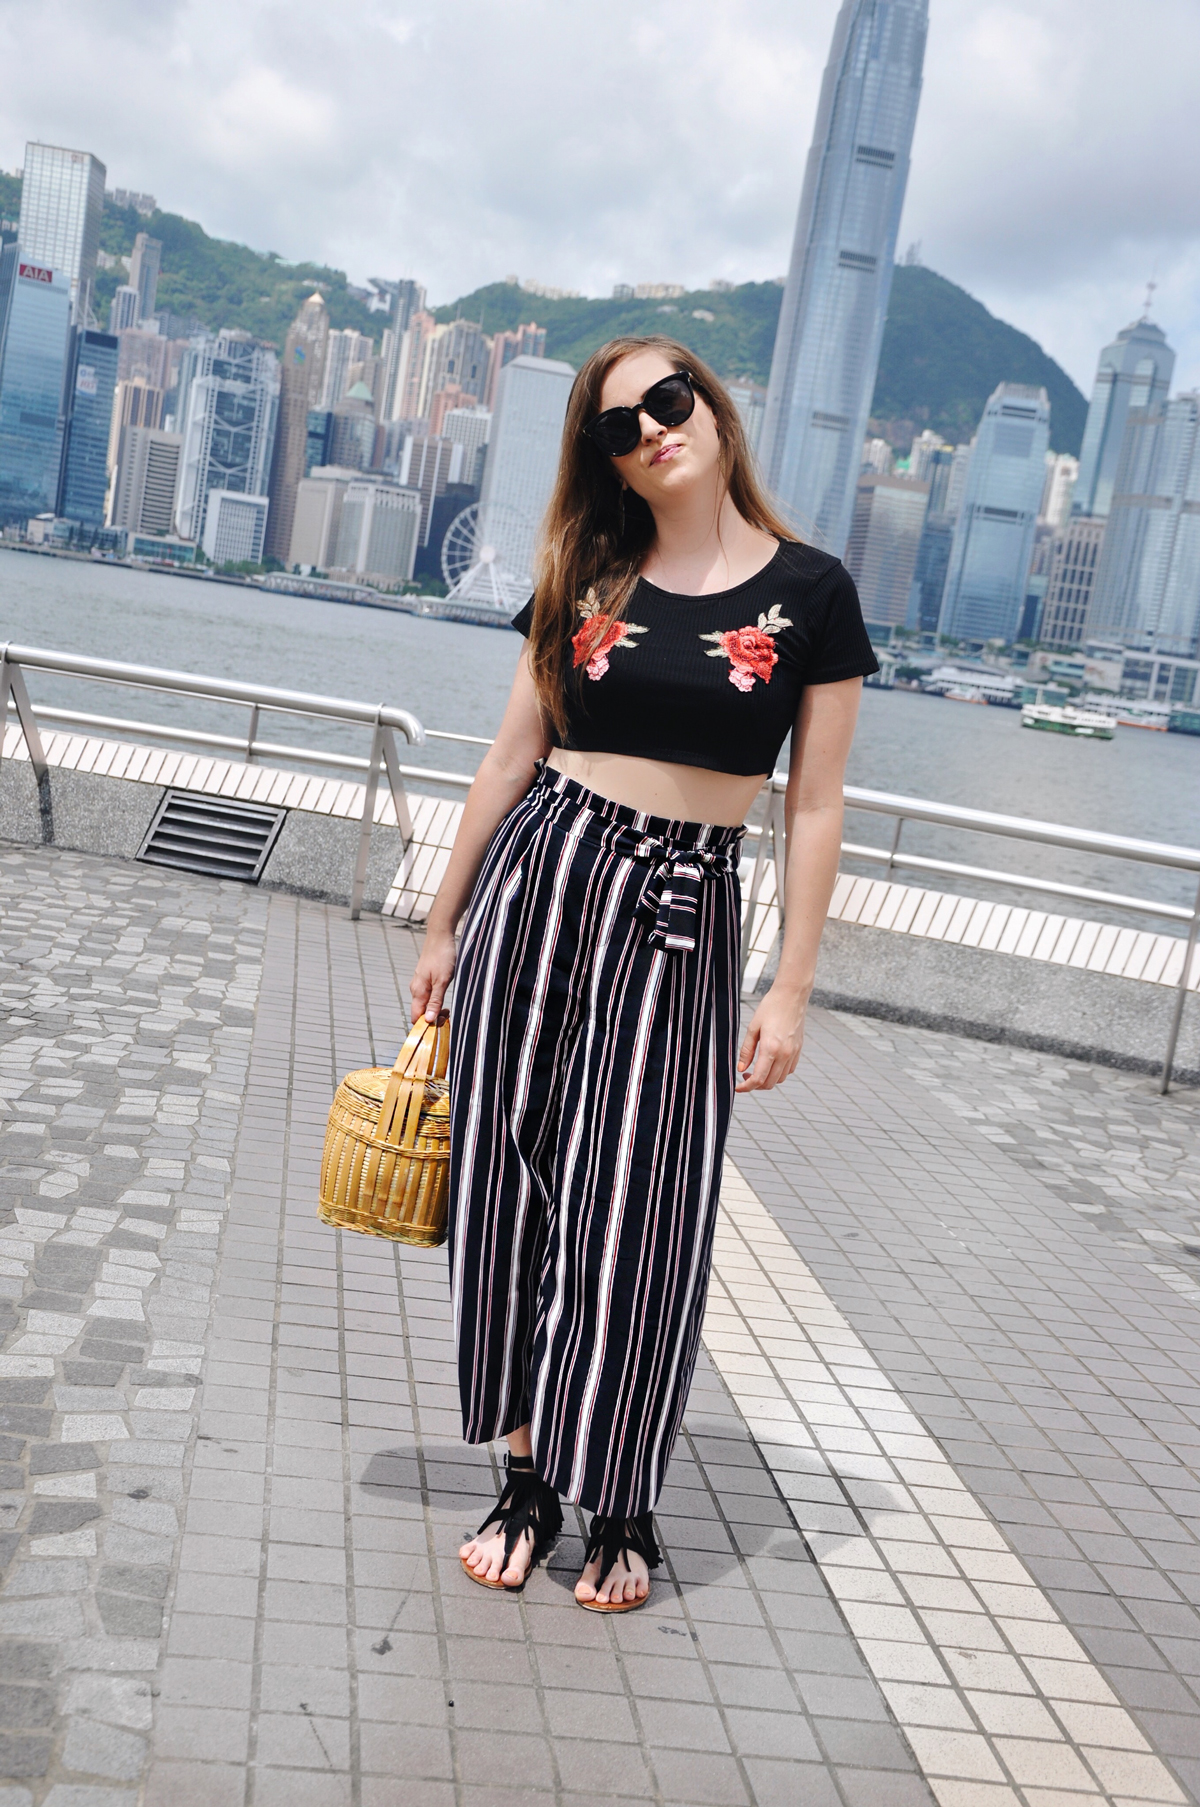 Fashionblogger, Andrea Steiner from Strawberries 'n' Champagne wear in Hong Kong a cropped top with flower prints from romwe.com with striped pants from Zara. The basket is handmade from a street market in Guizhou and the sunglasses from Muji in Shanghai and the shoes from Forever 21.